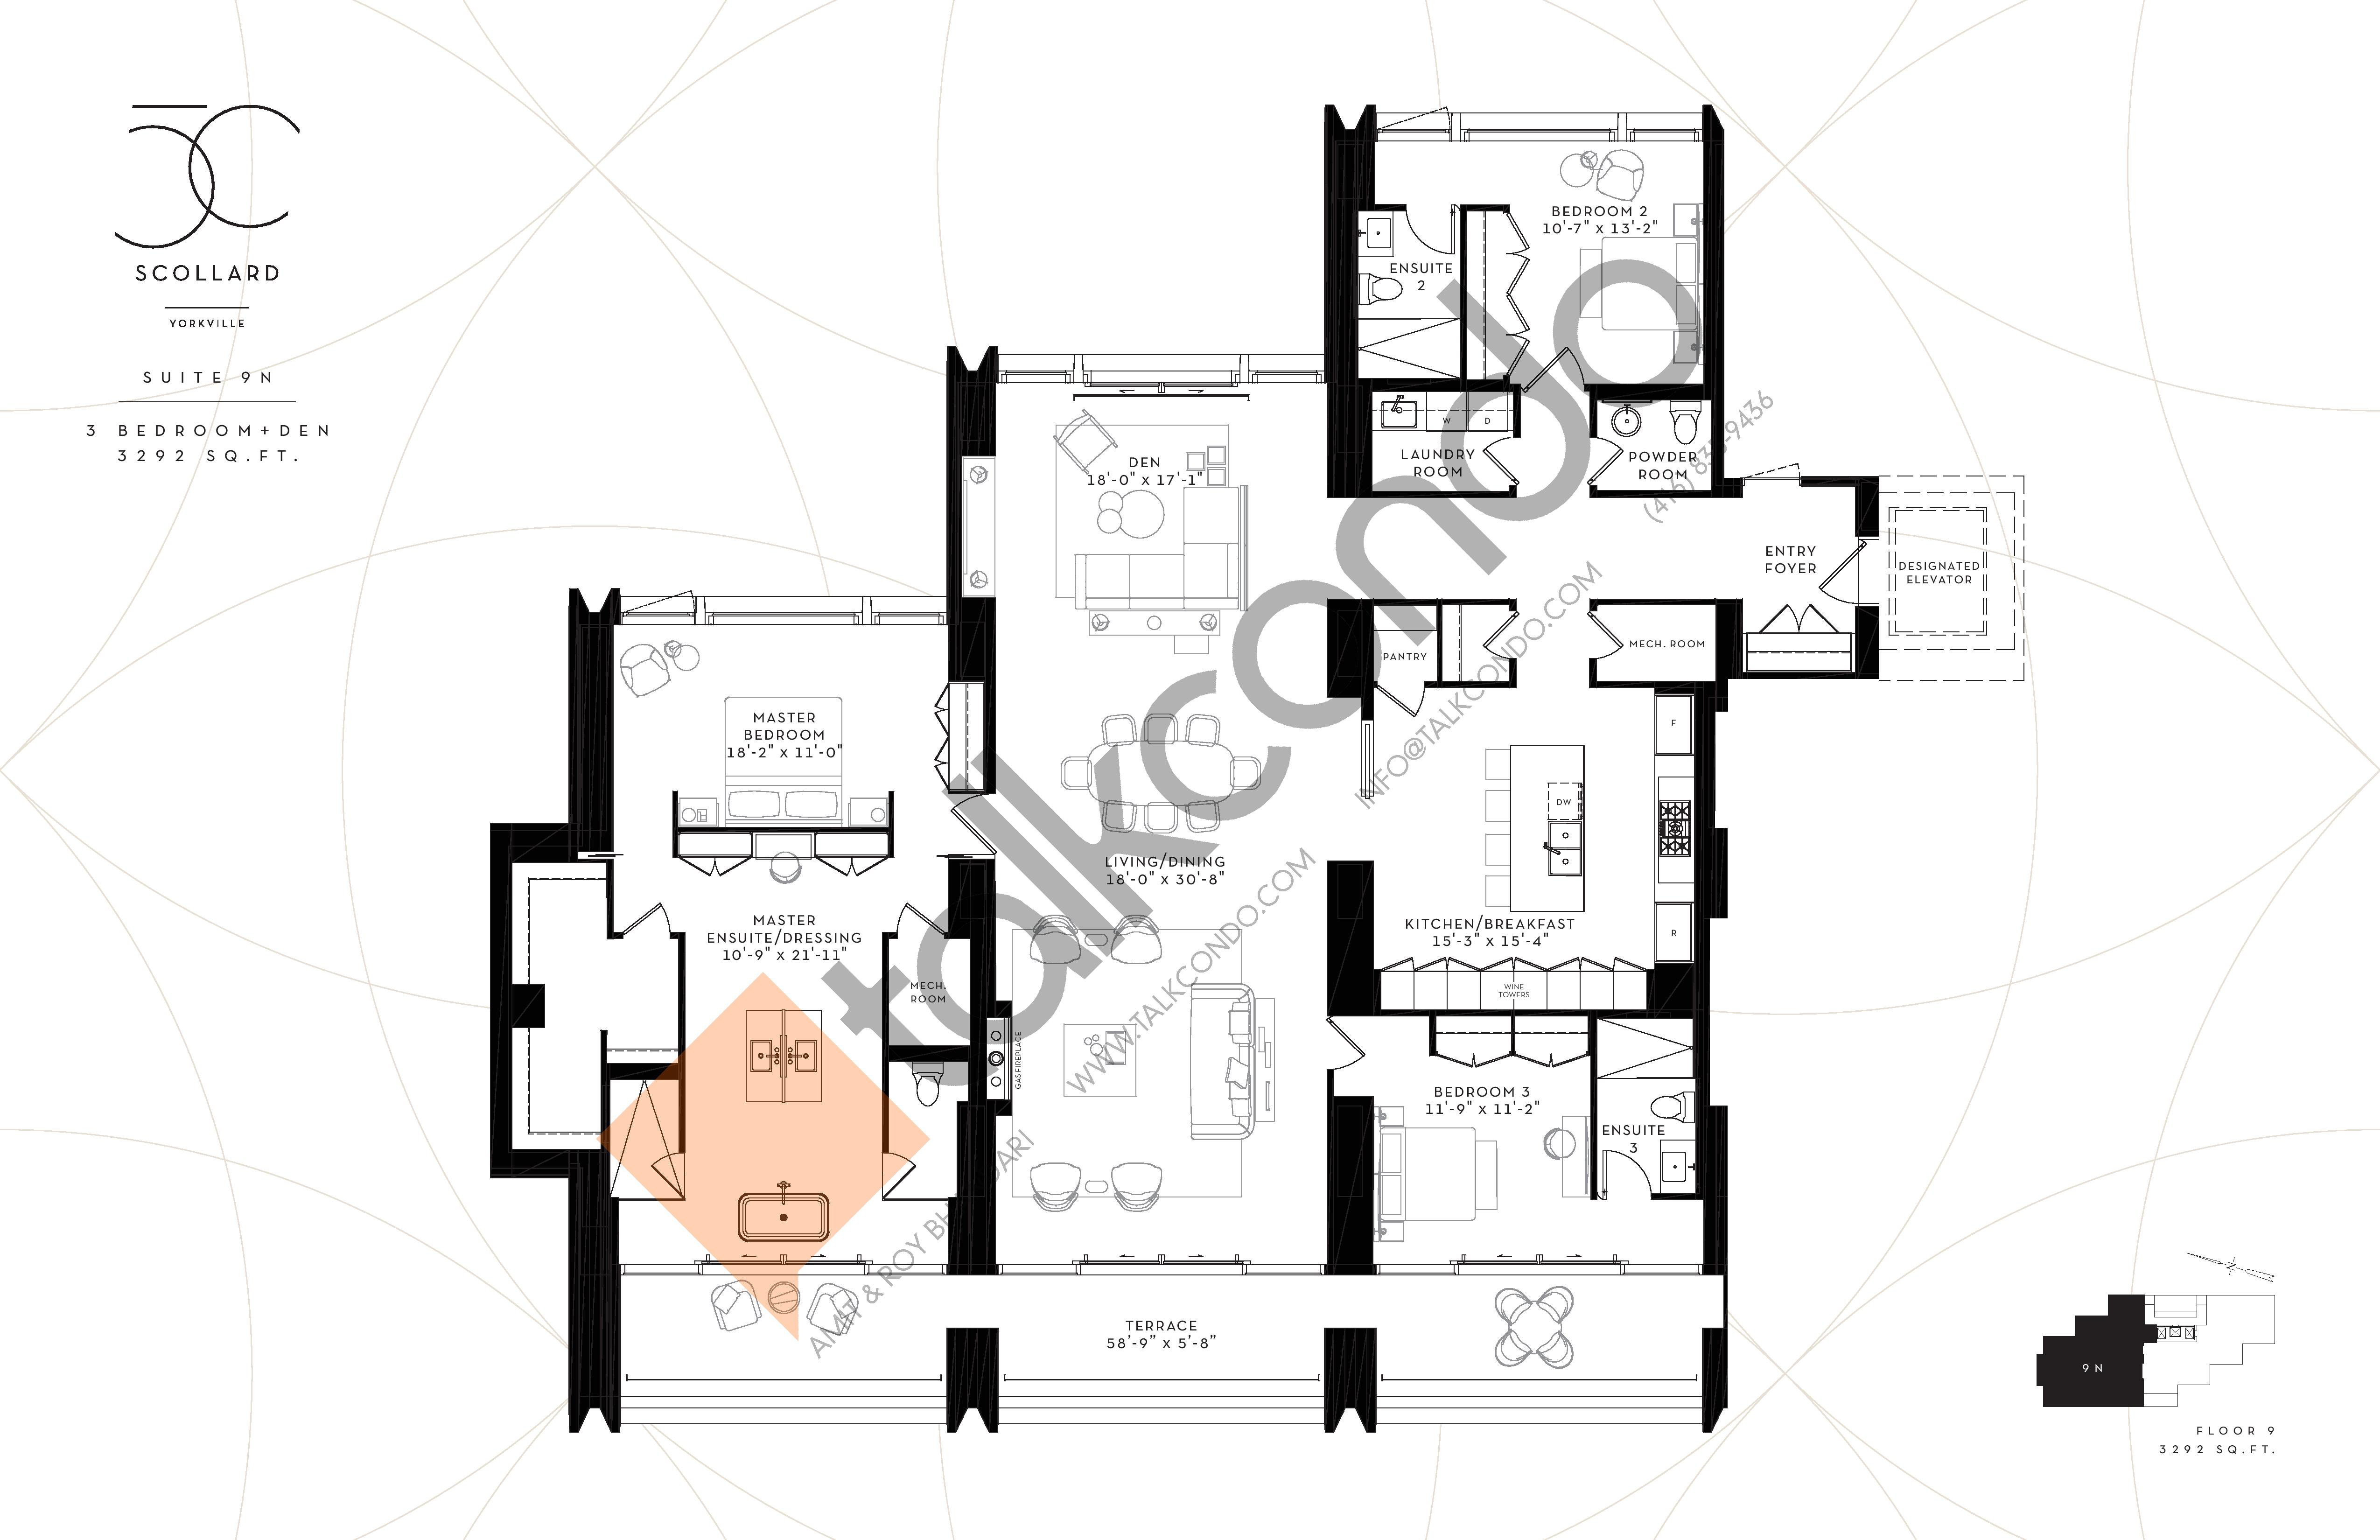 Suite 9N Floor Plan at Fifty Scollard Condos - 3292 sq.ft